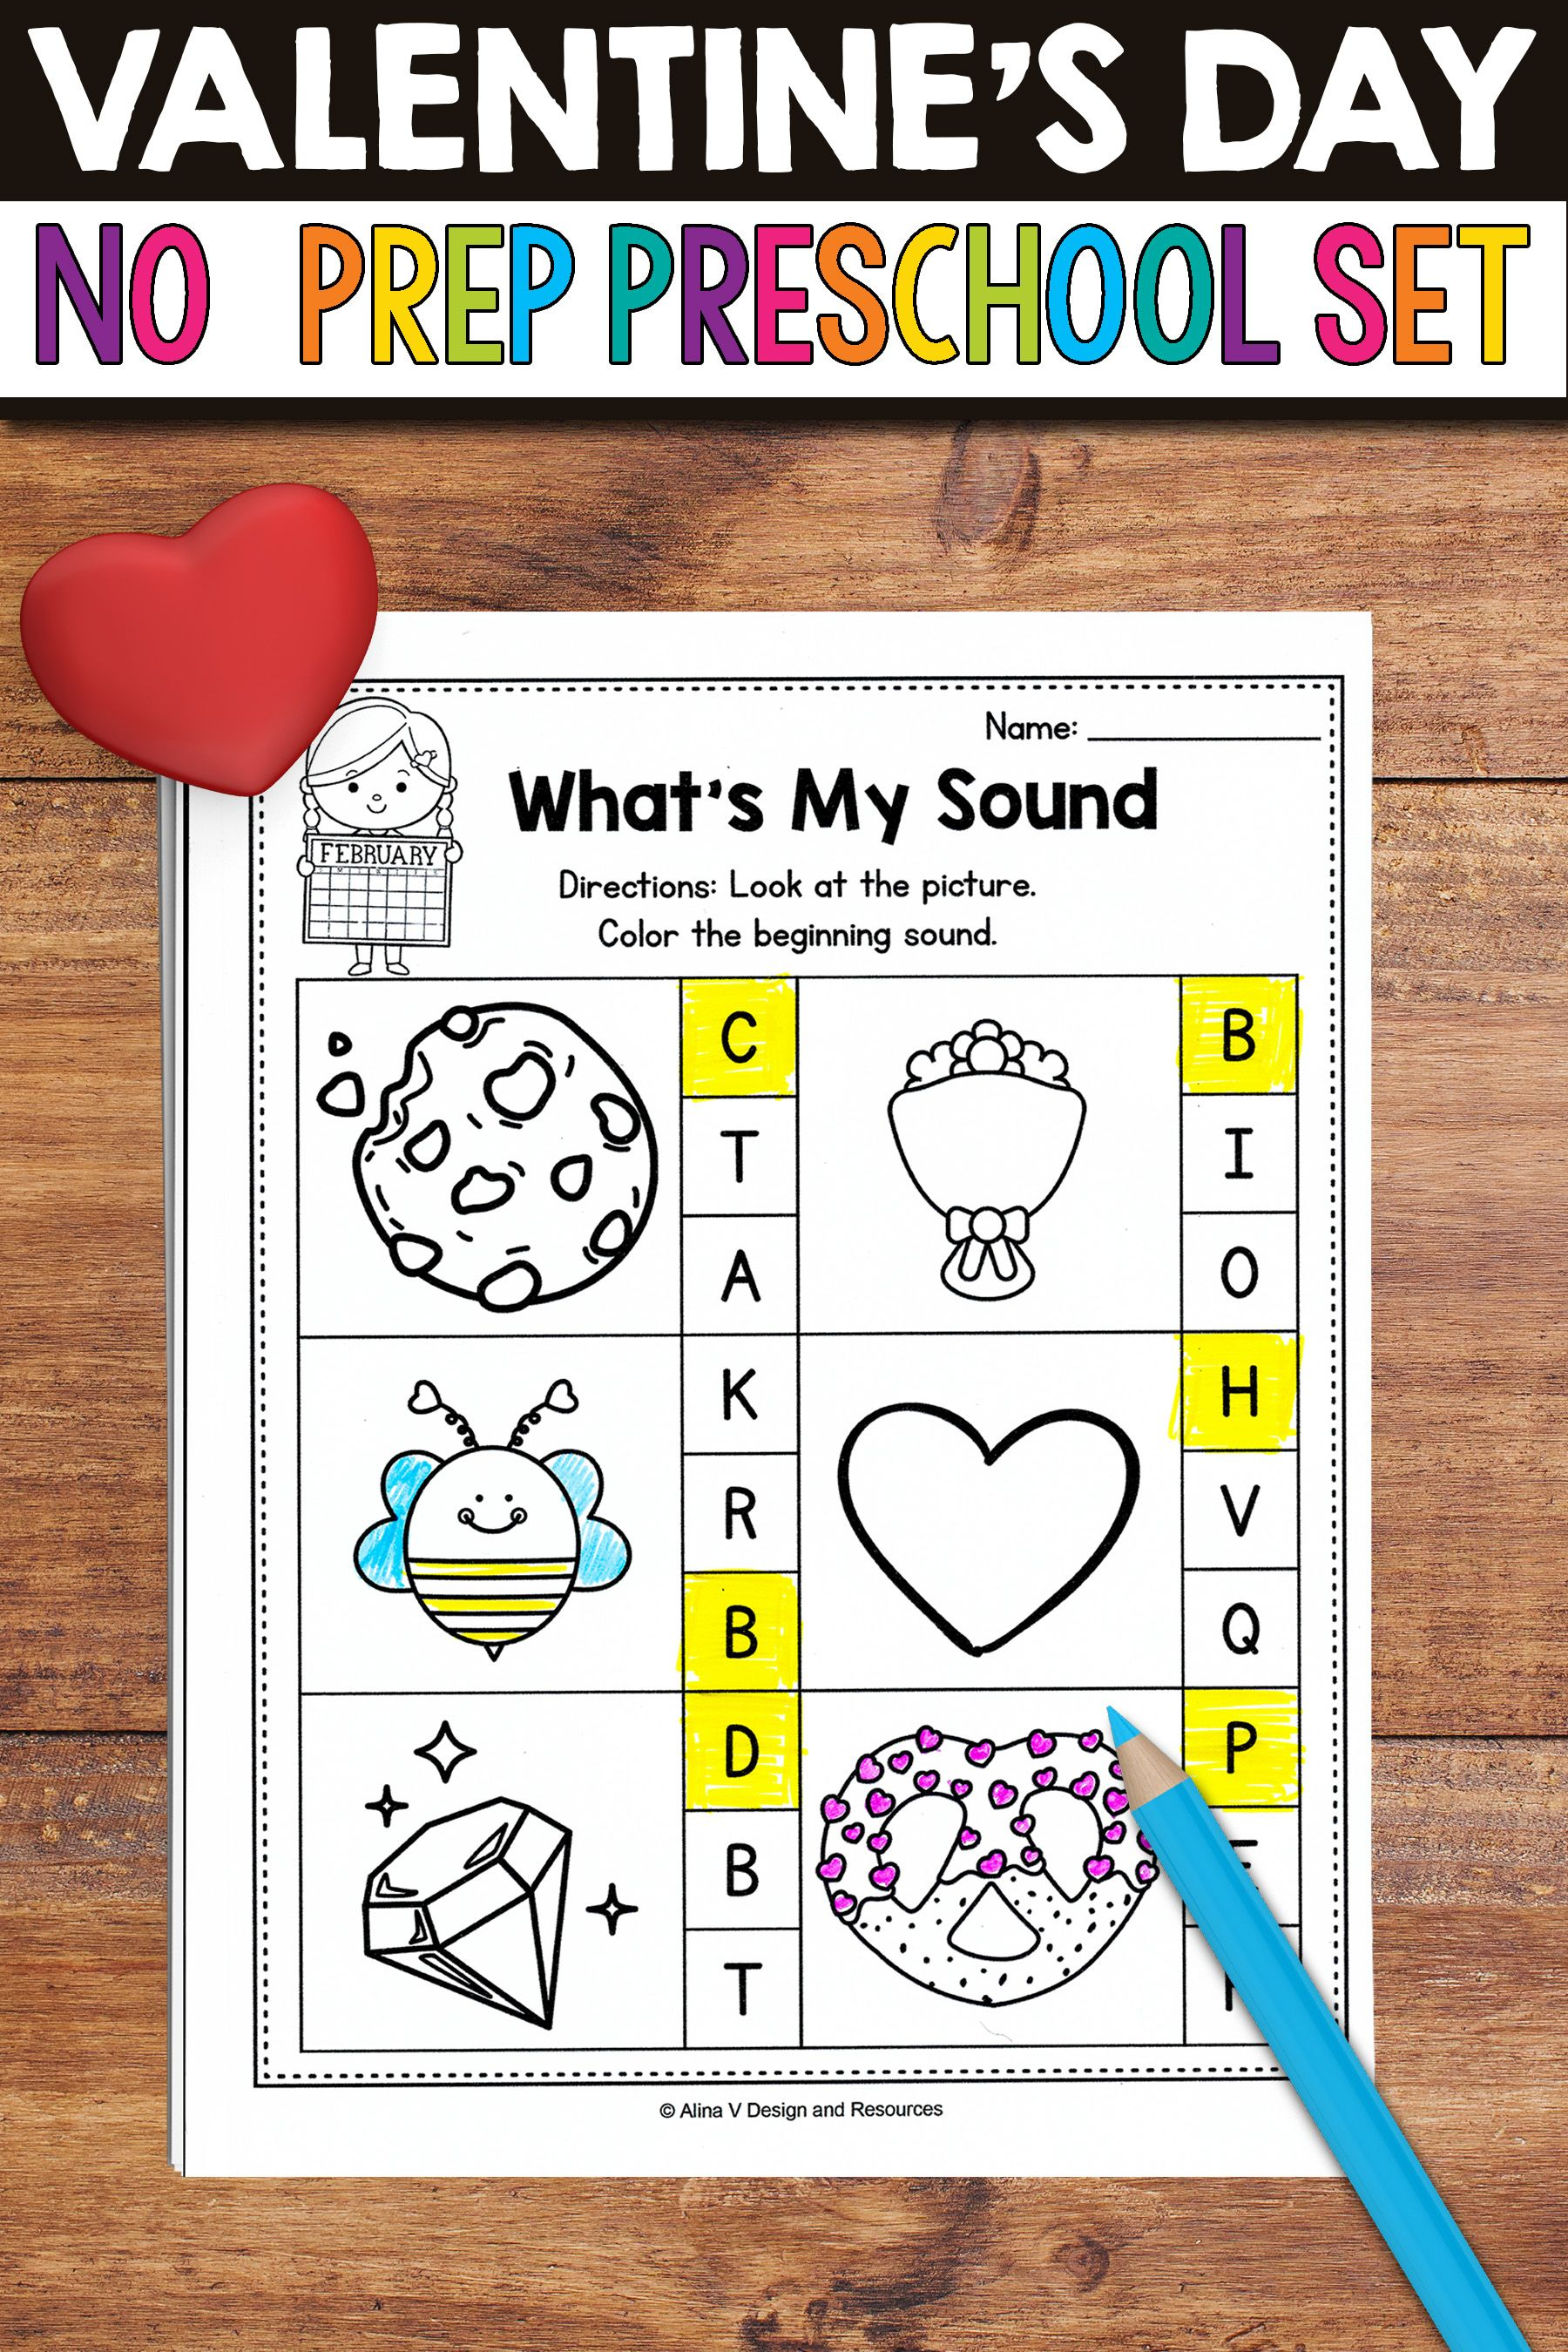 Are You Looking For Some Fun No Prep Valentine S Day Worksheets And Activities To Use In The